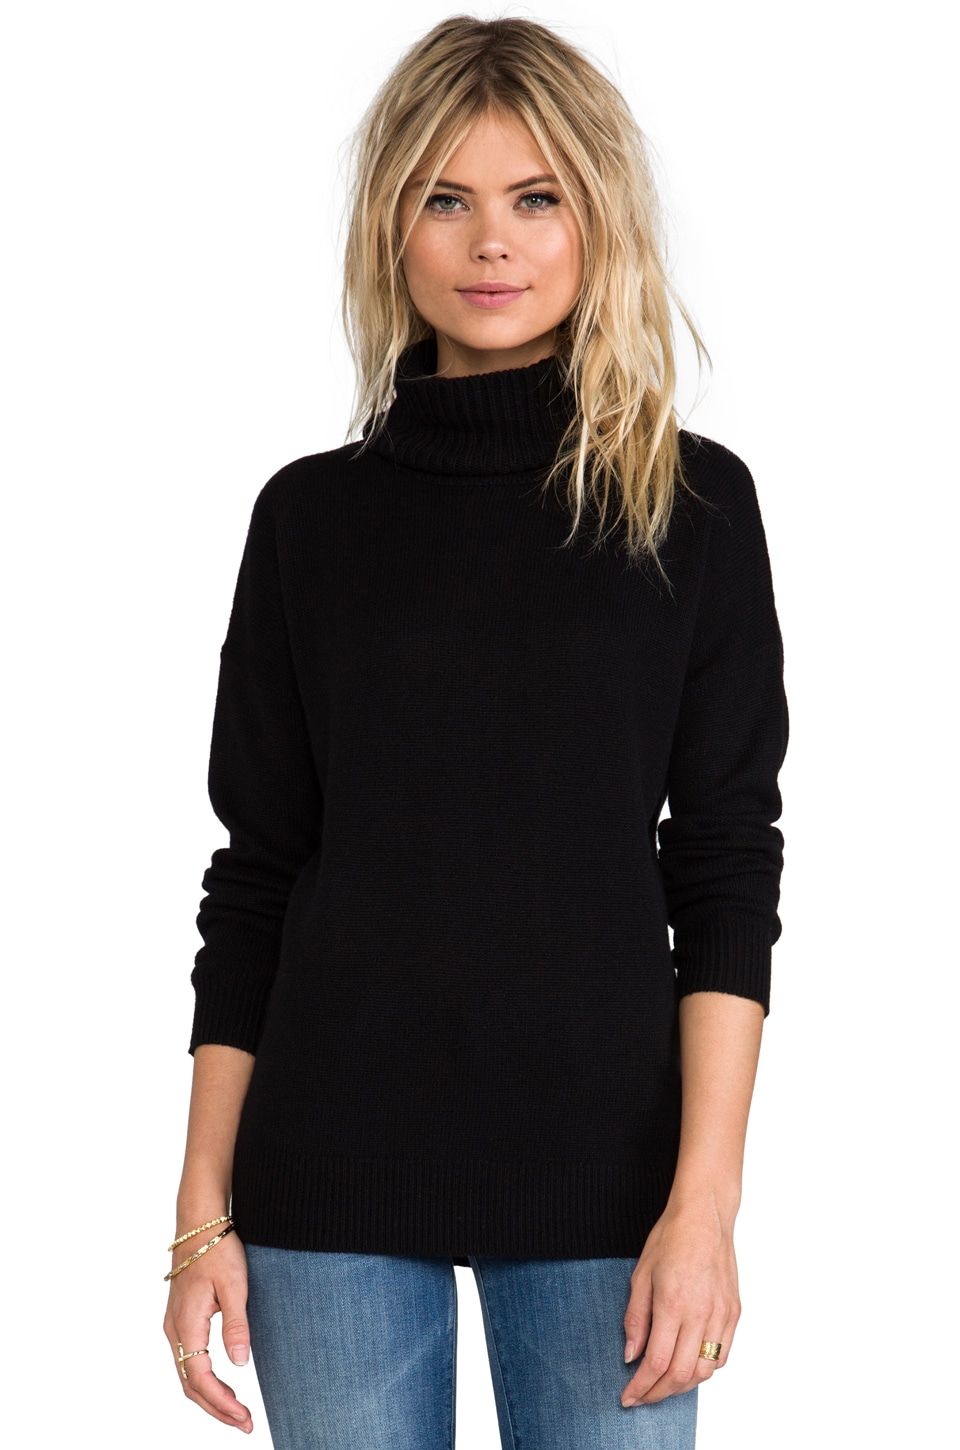 Theory Cashmere Dreeden Turtleneck in Black